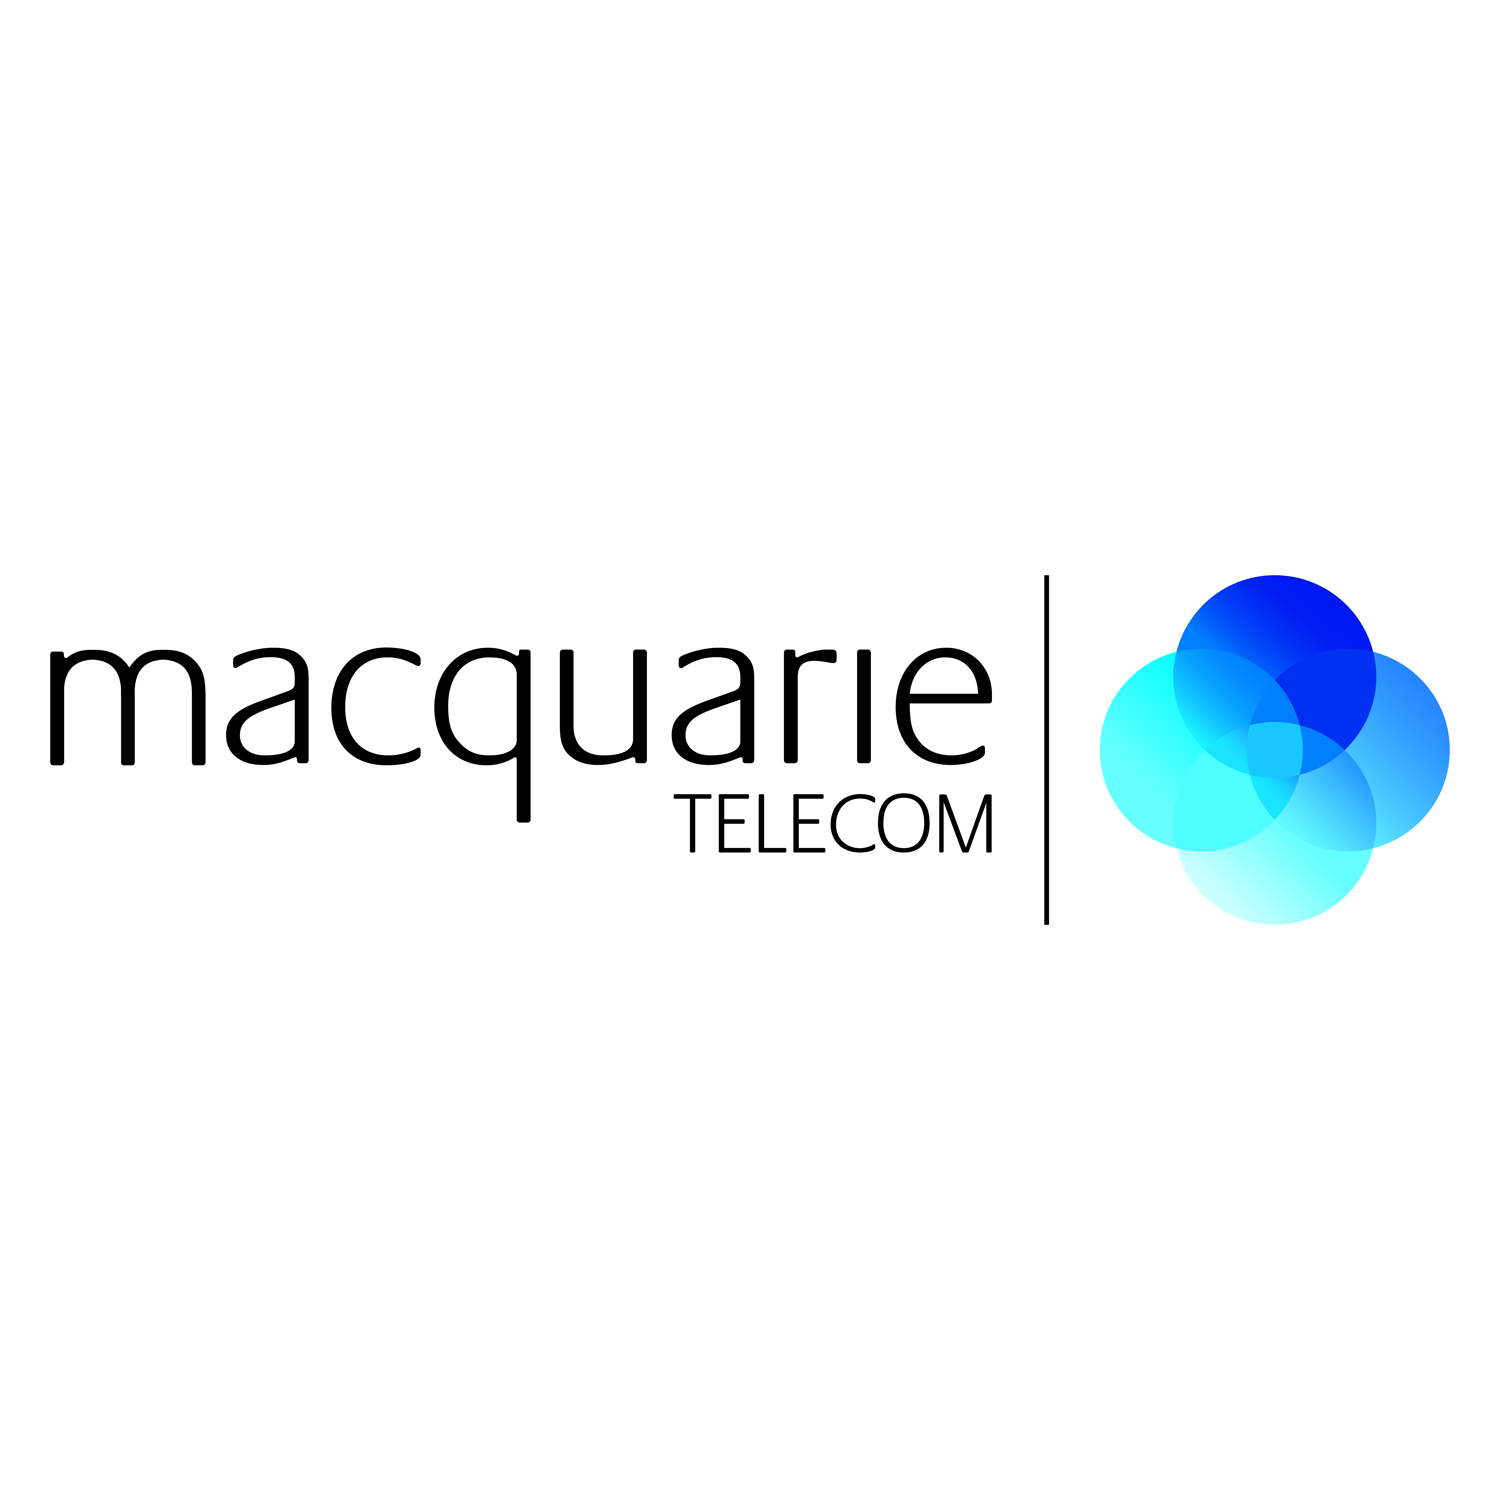 Macquarie Telecom Logo.jpg